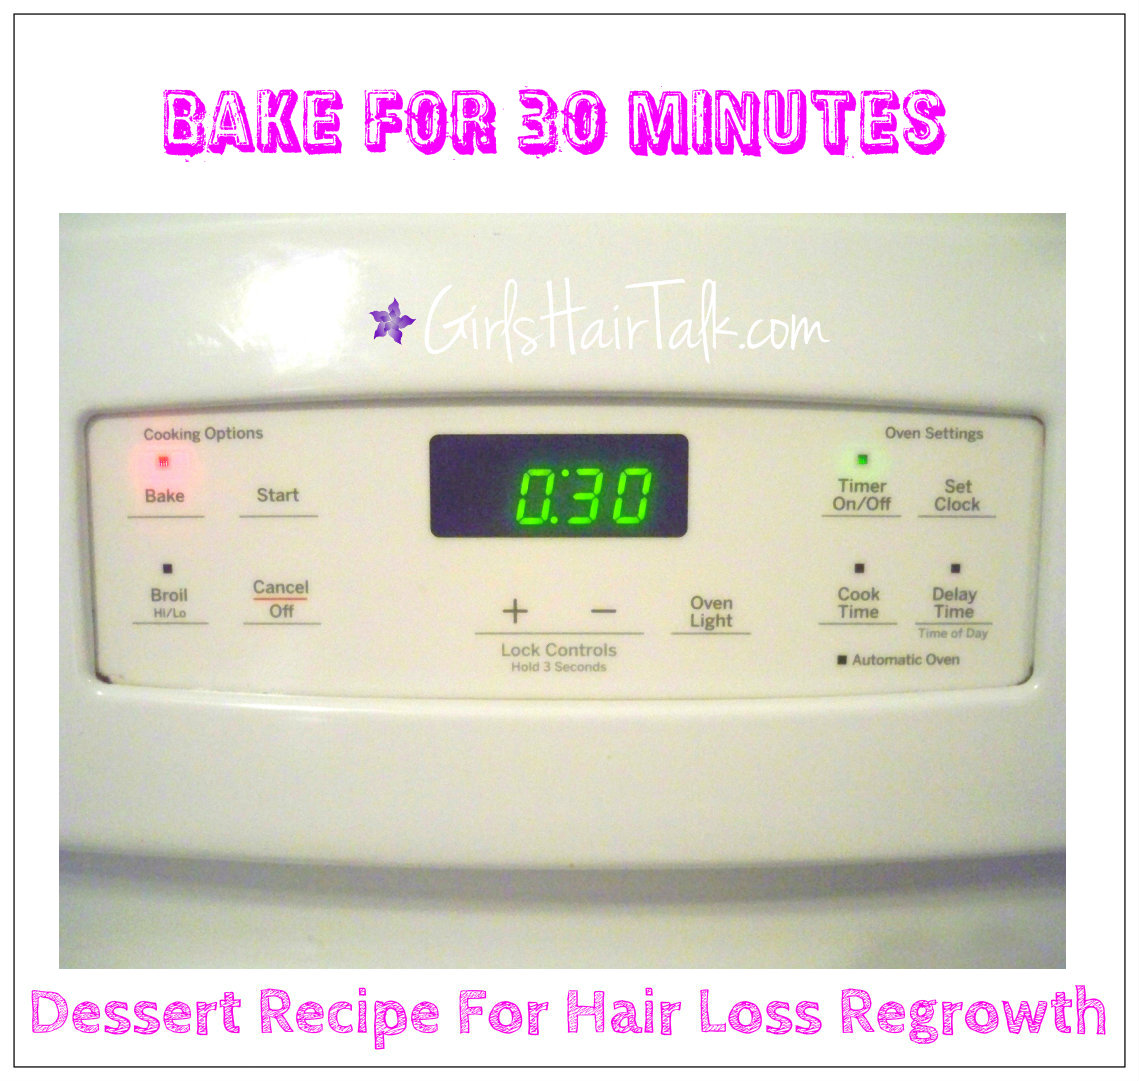 Oven timer says 30 min